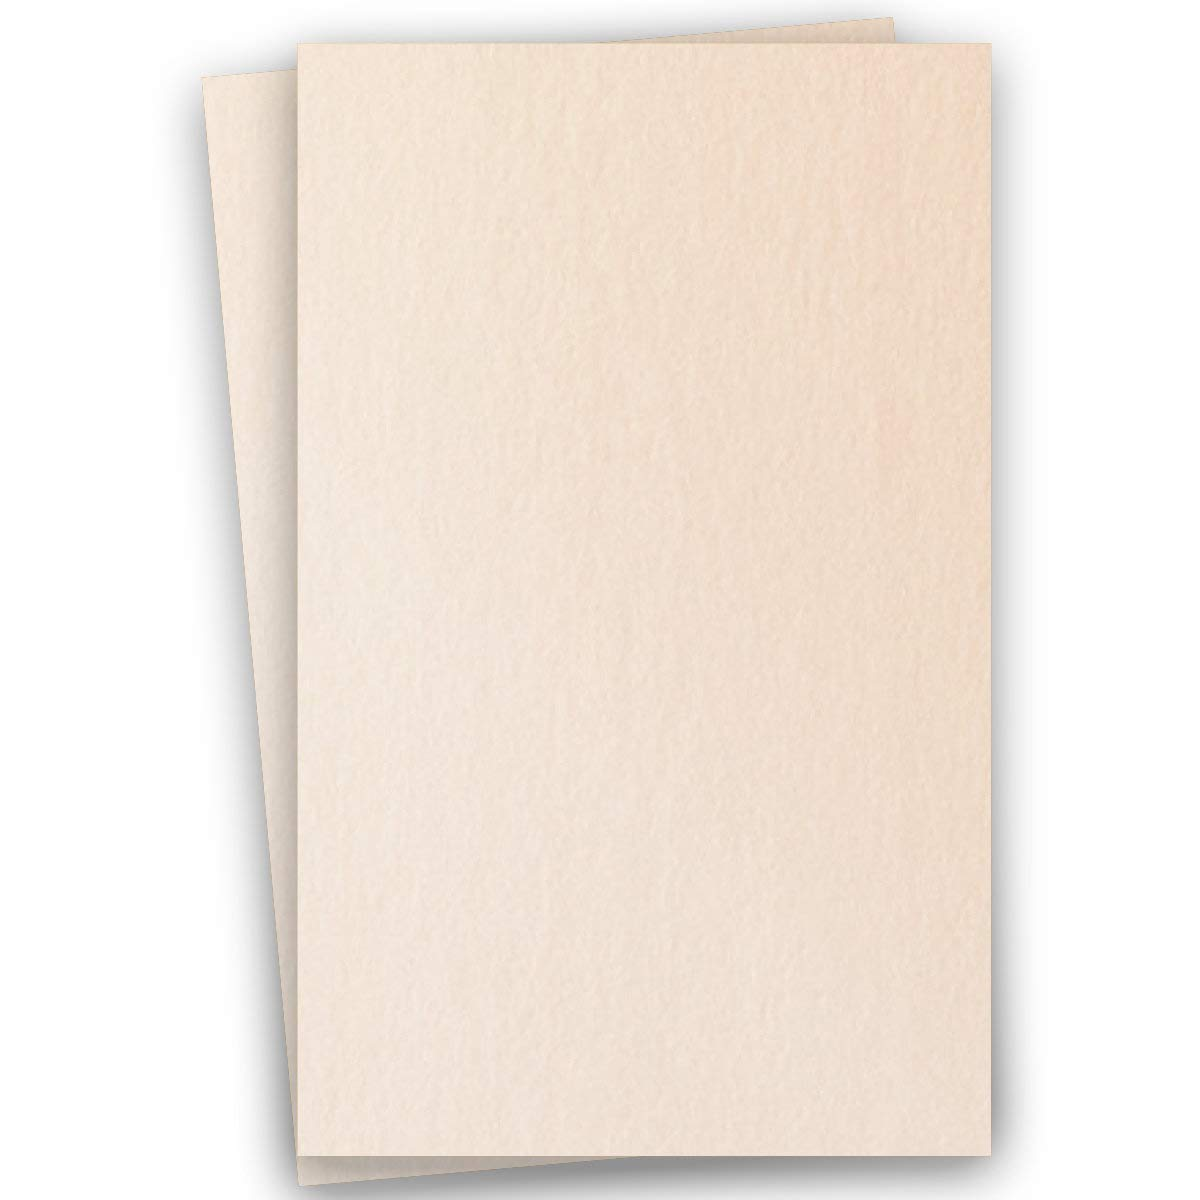 Metallic Soft Coral 11-x-17 Cardstock Paper 100-pk - PaperPapers 284 GSM (105lb Cover) Ledger Size Metallic Card Stock Paper - Business, Card Making, Designers, Professional and DIY Projects